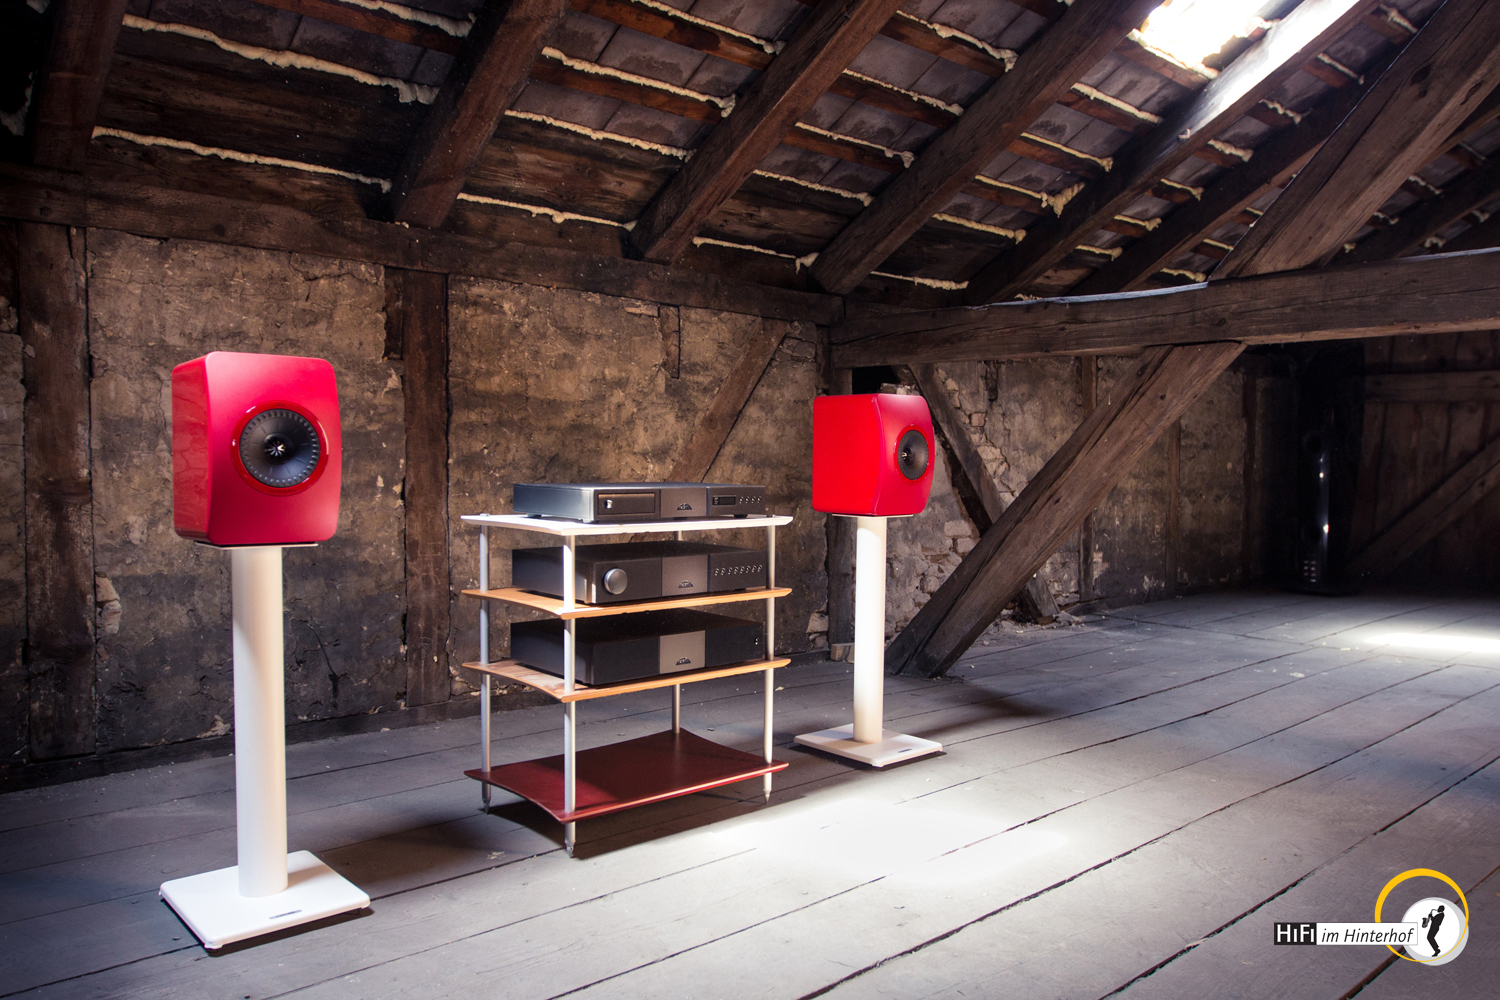 hifi-im-hinterhof-berlin-session-kef-ls50-II